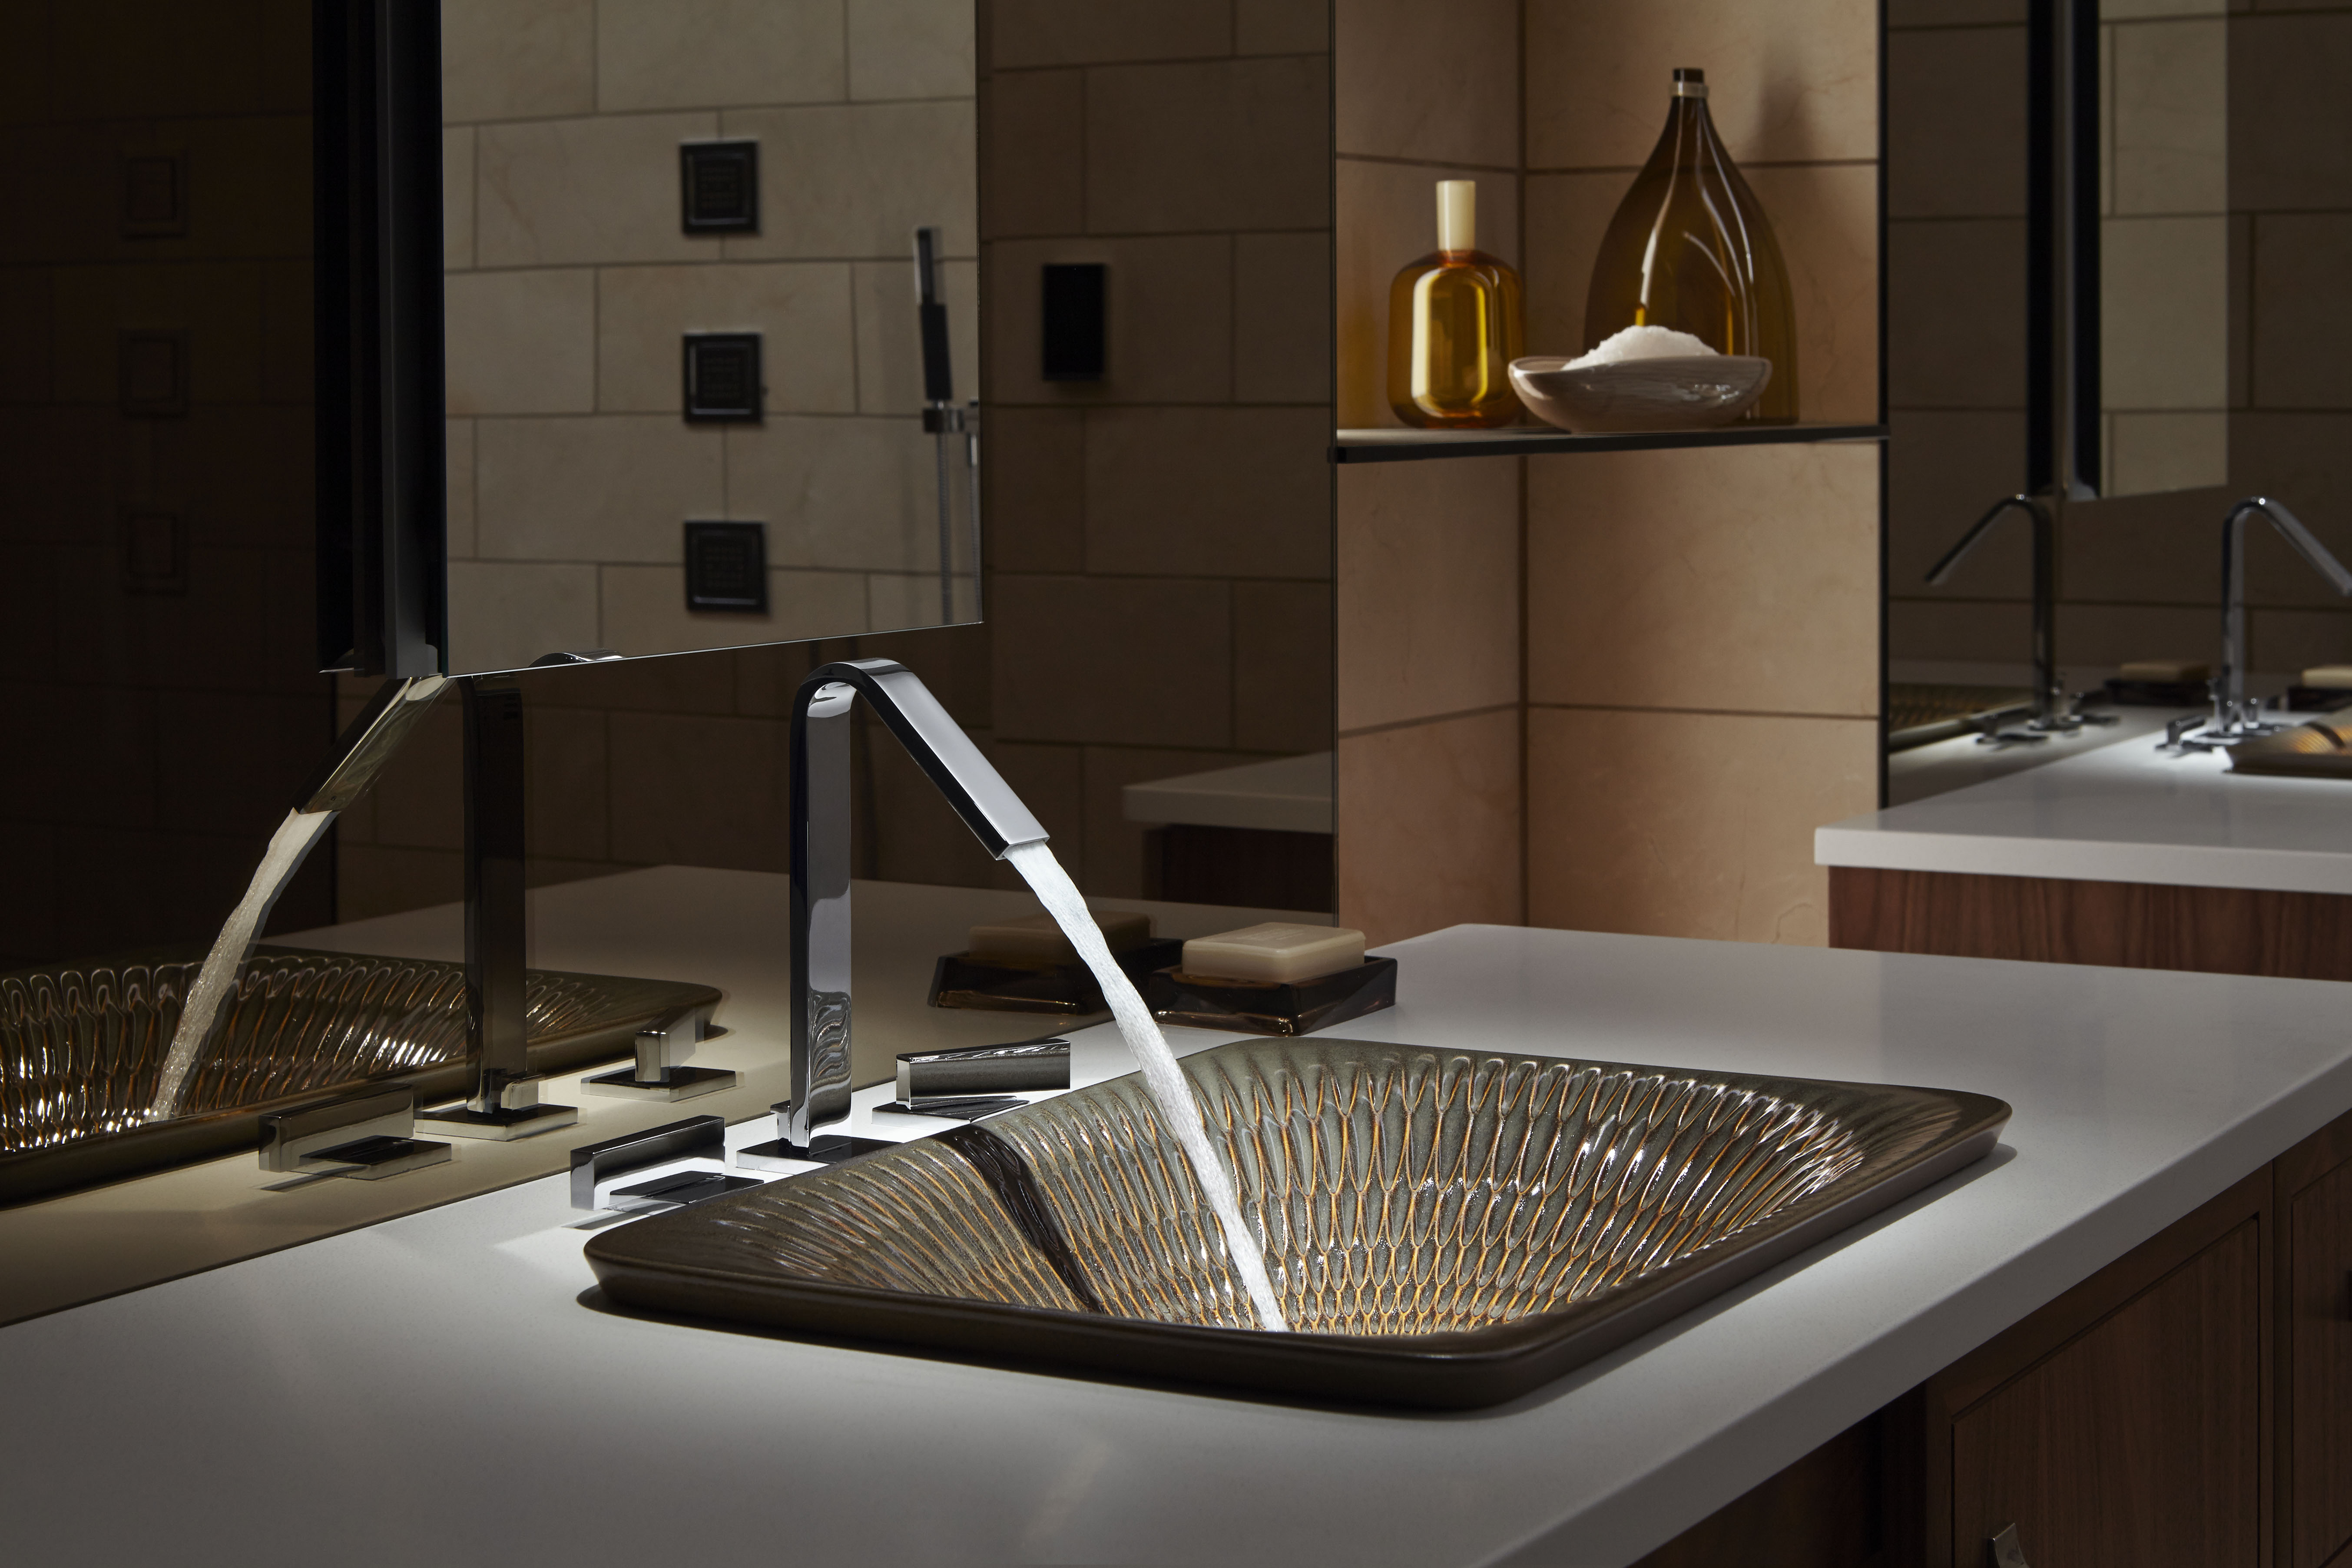 Loure Faucet     Derring Sink     Create visual tension by blending an artistic textured sink with a clean Polished Chrome faucet finish.